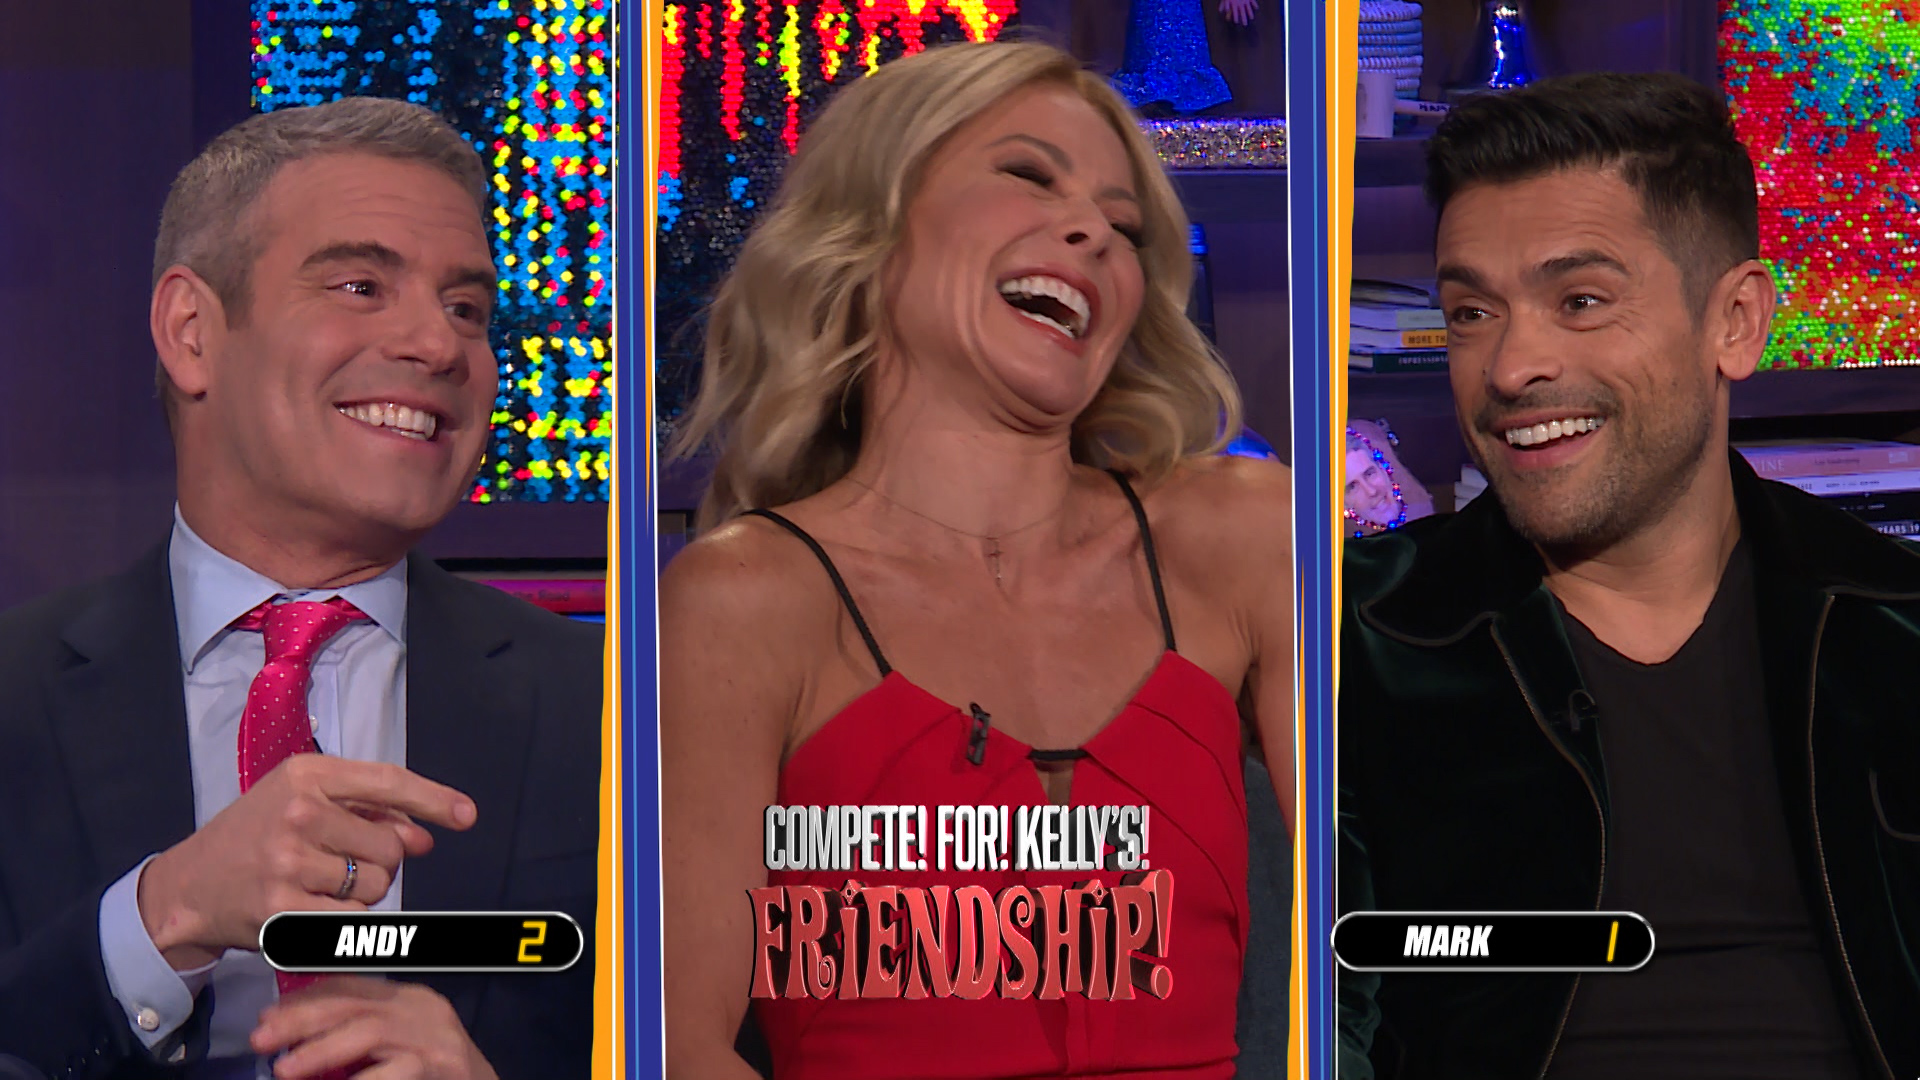 Andy Cohen & Mark Consuelos Compete for Kelly Ripa's Friendship